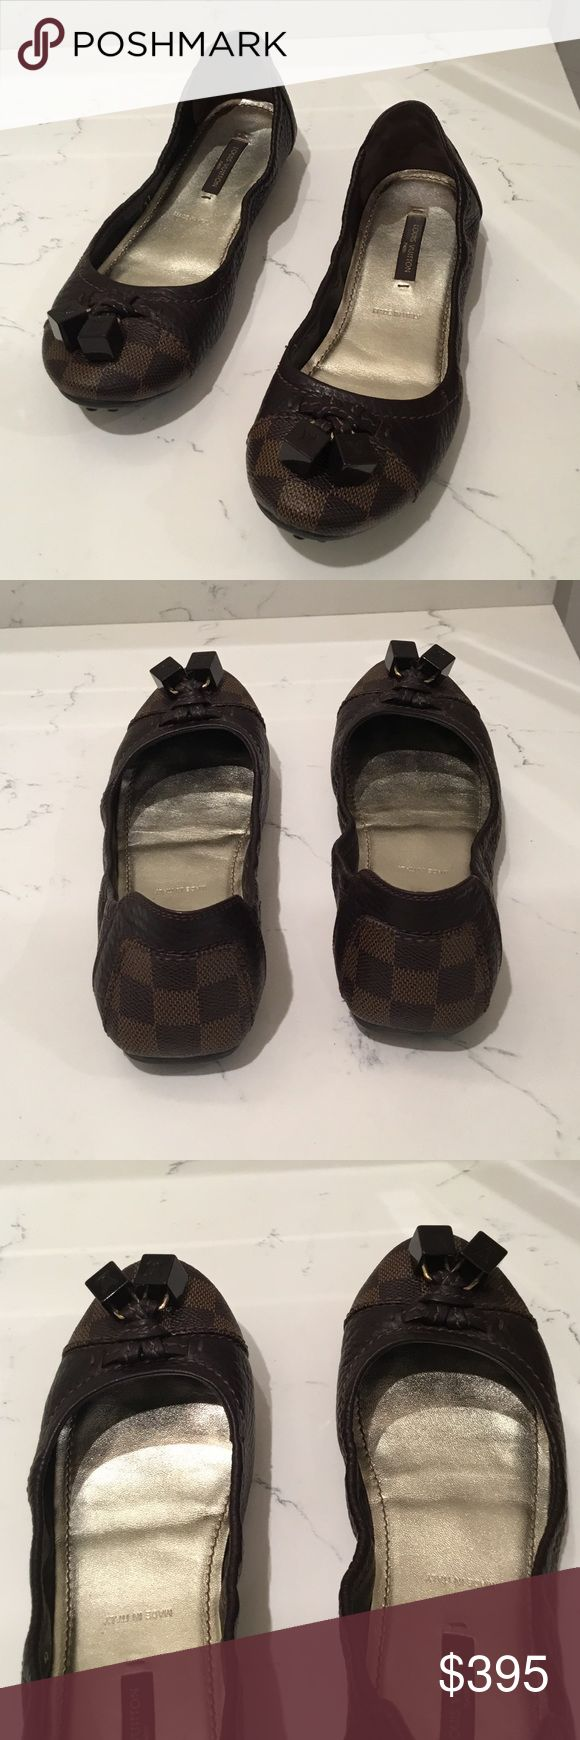 Louis Vuitton Ballet Flats Louis Vuitton Damier Canvas with Brown leather Ballet Flats. In excellent used condition. Worn once. Dust bags included Louis Vuitton Shoes Flats & Loafers